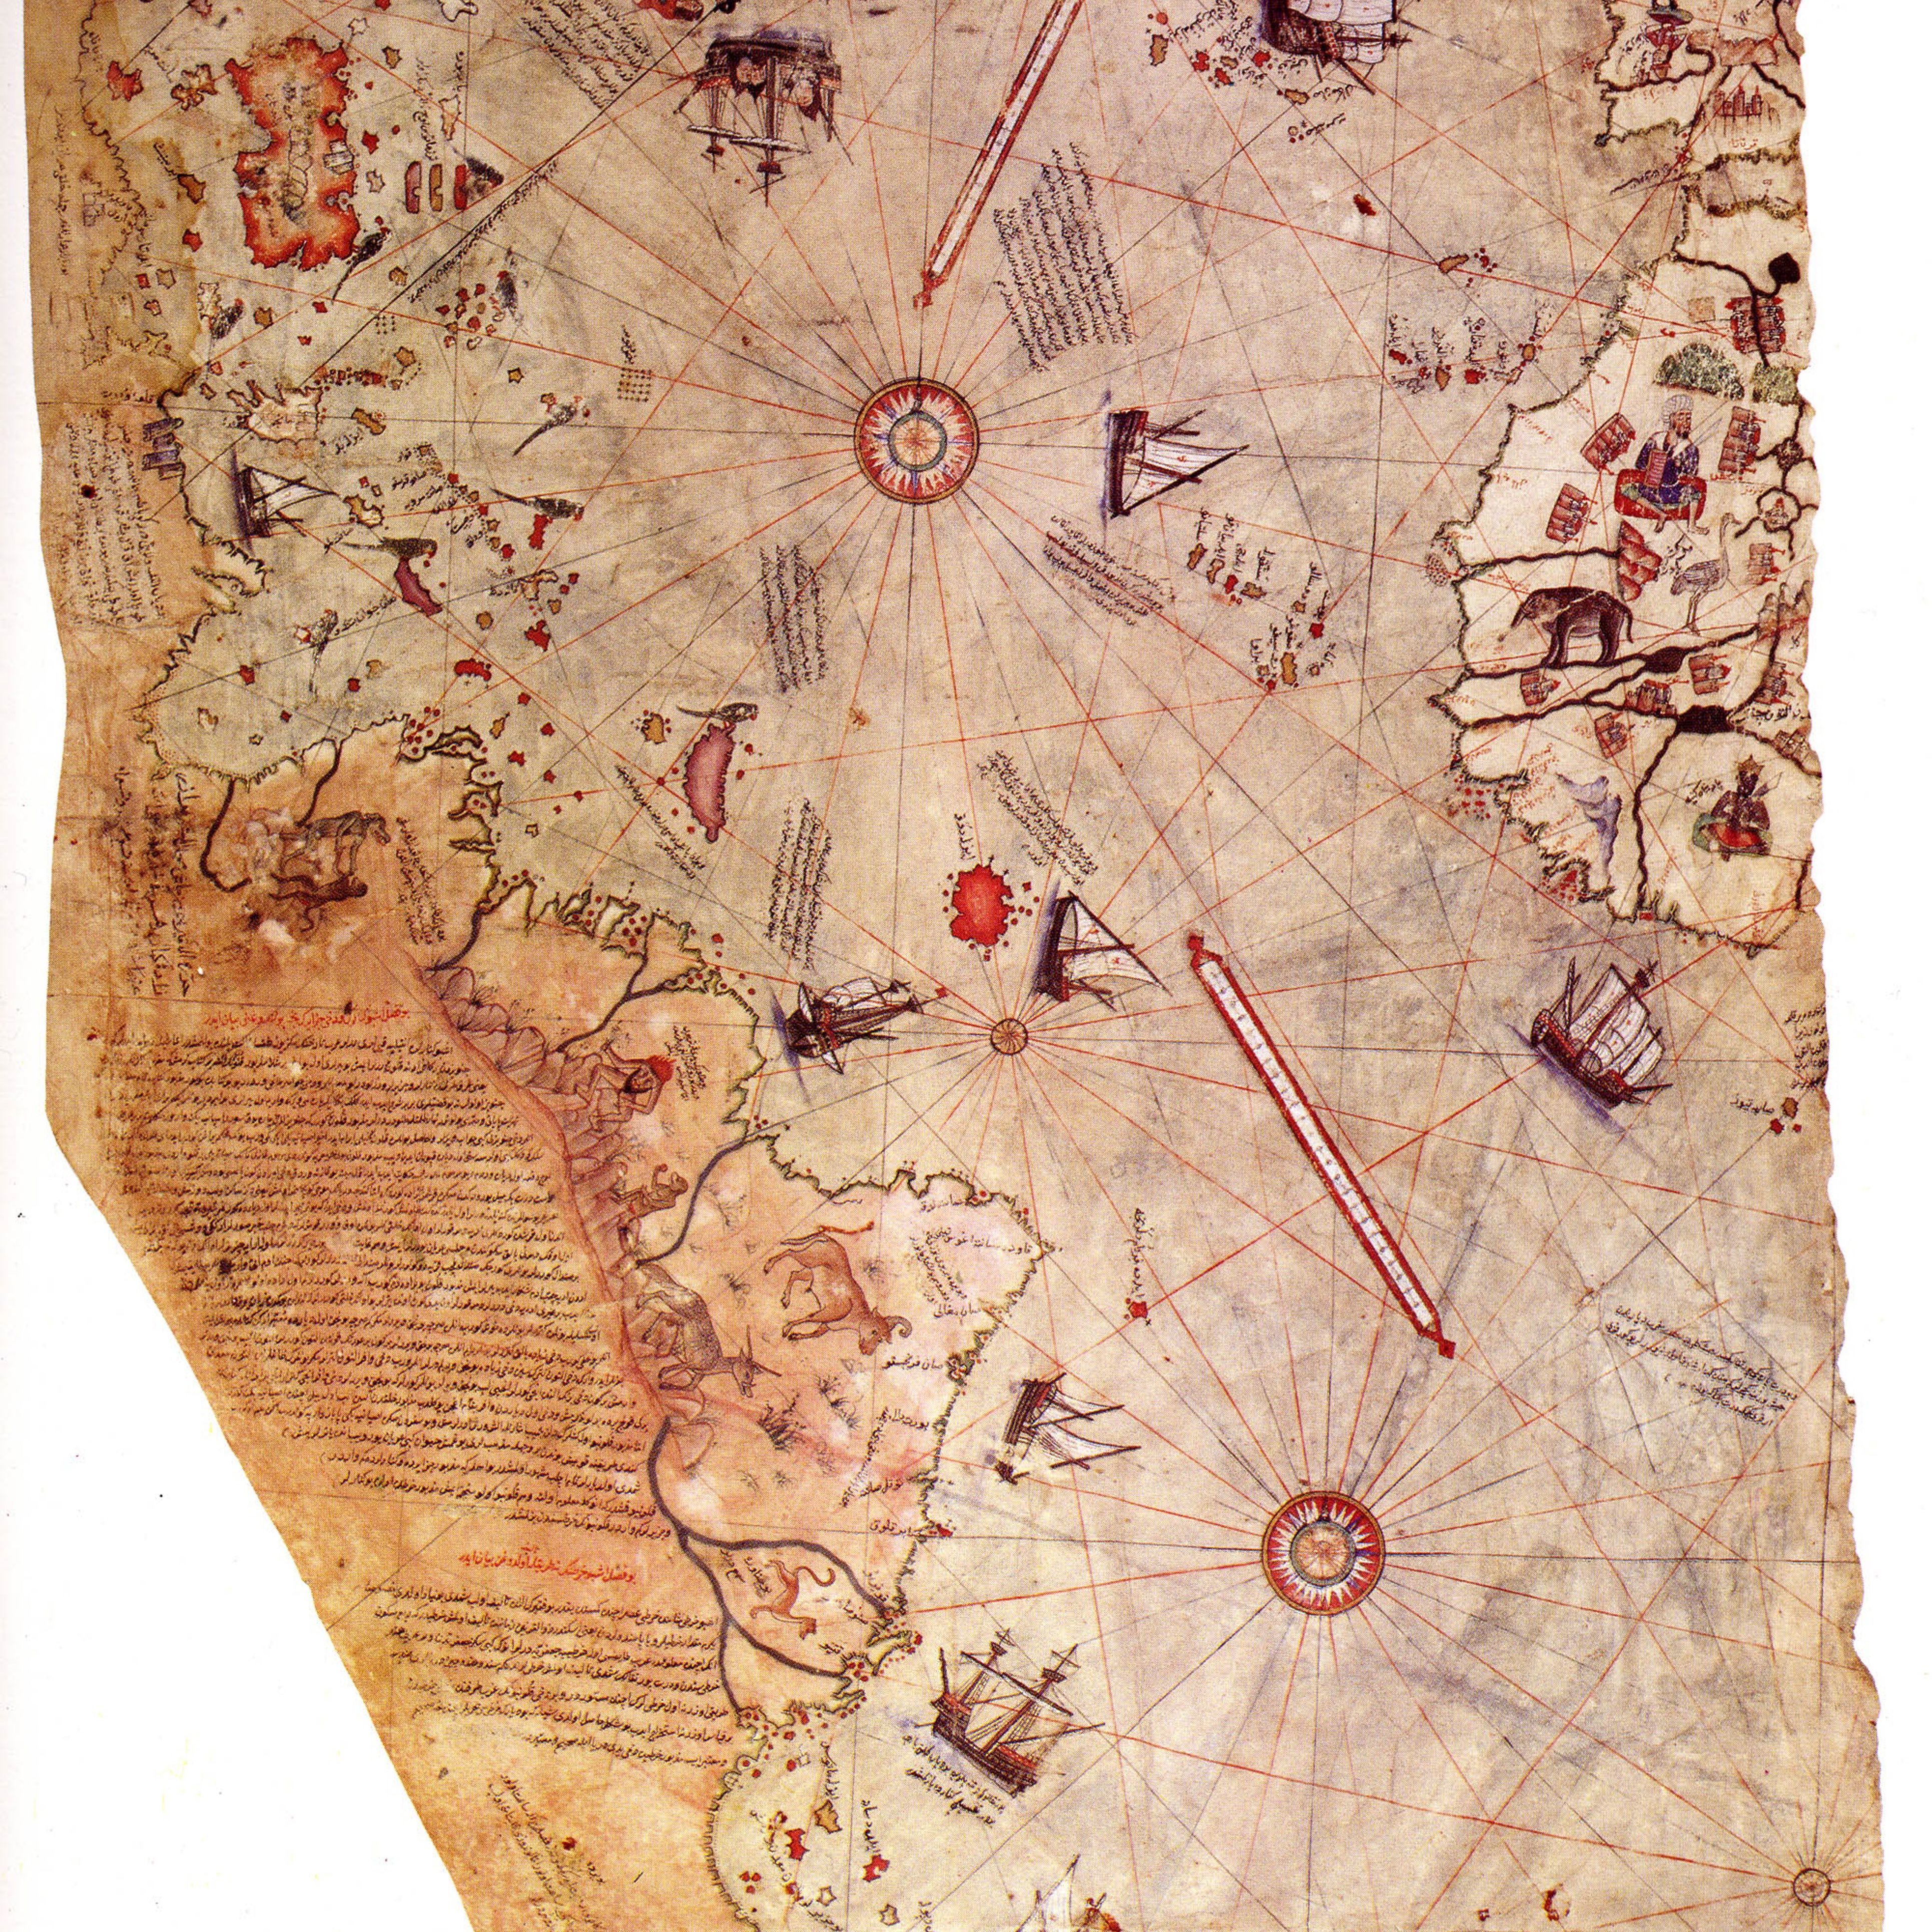 The Piri Reis world map, 1513. Found in the collection of the Topkapı Palace, Istanbul.